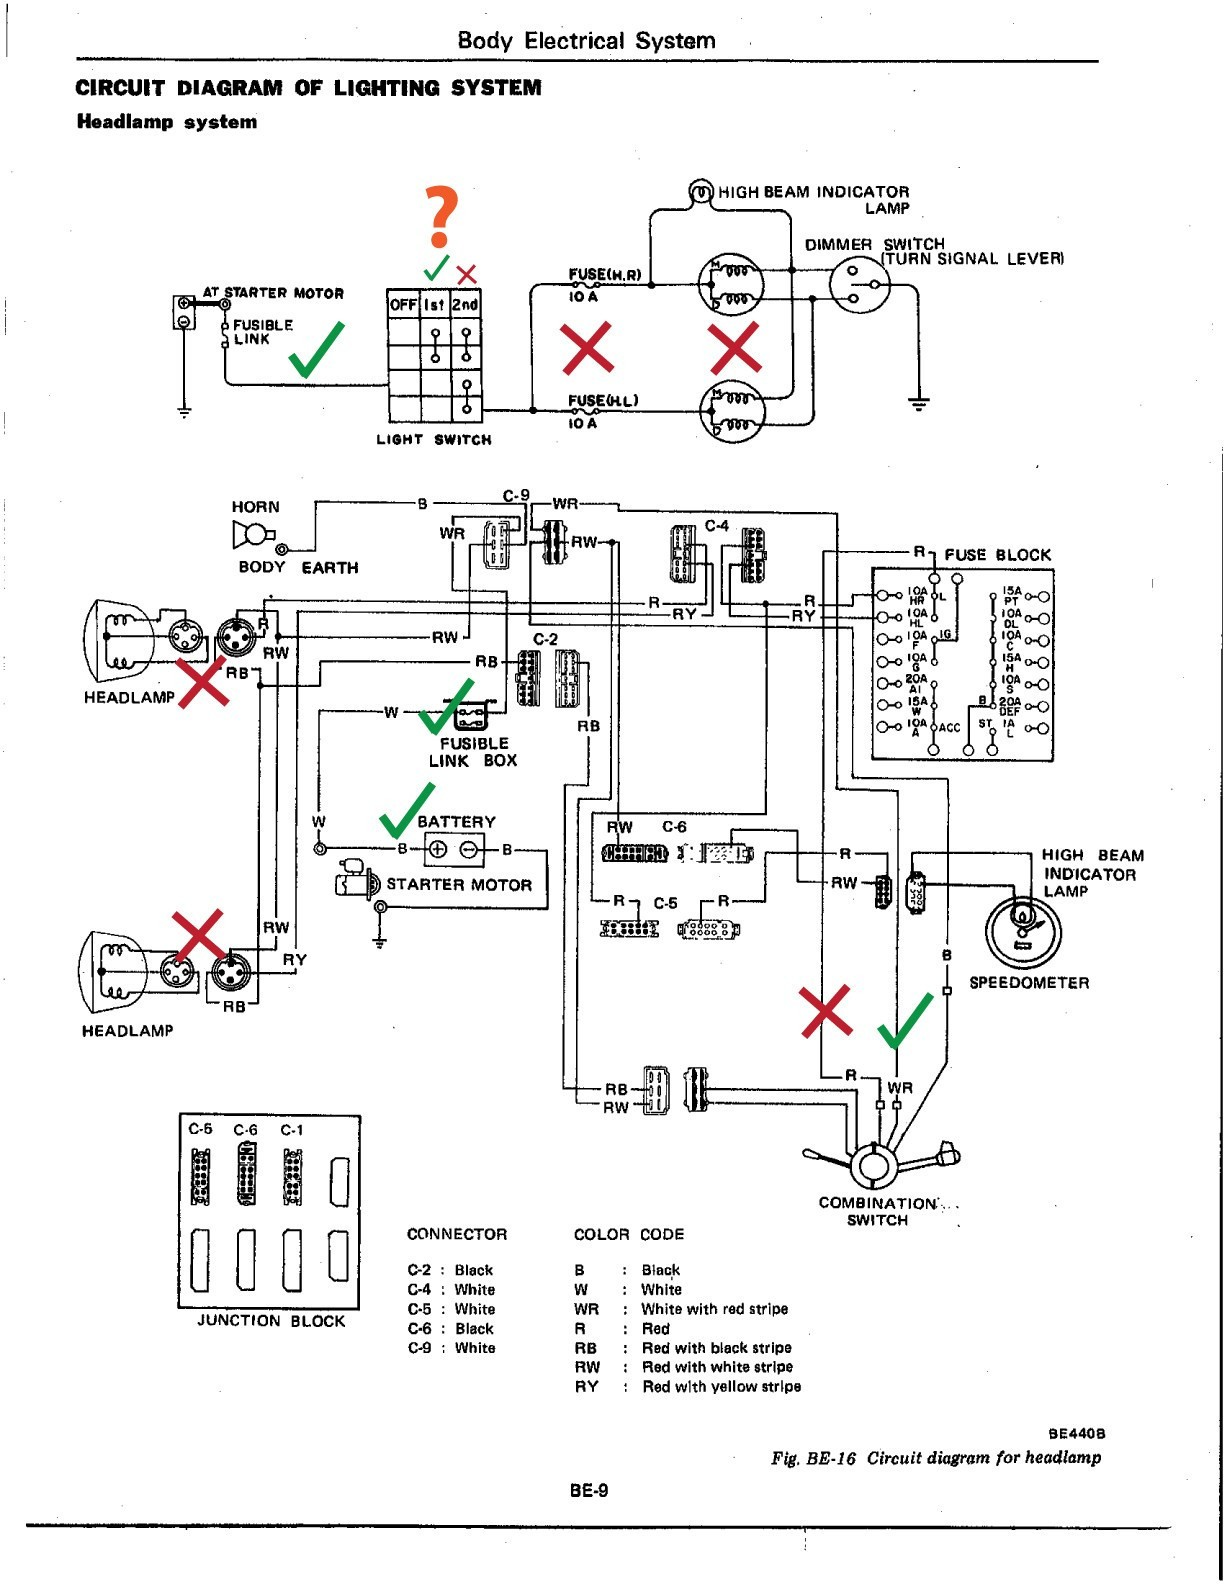 BF1DC 159 69 3 193 2012 Ktm Wiring Diagram | Wiring Resources on ktm exc turn signals, ktm 250 wiring diagram, ktm exc frame, ktm exc headlight, ktm 525 wiring diagram, ktm exc transmission, ktm 450 wiring diagram, ktm 300 wiring diagram, ktm 400 wiring diagram, ktm exc wheels,